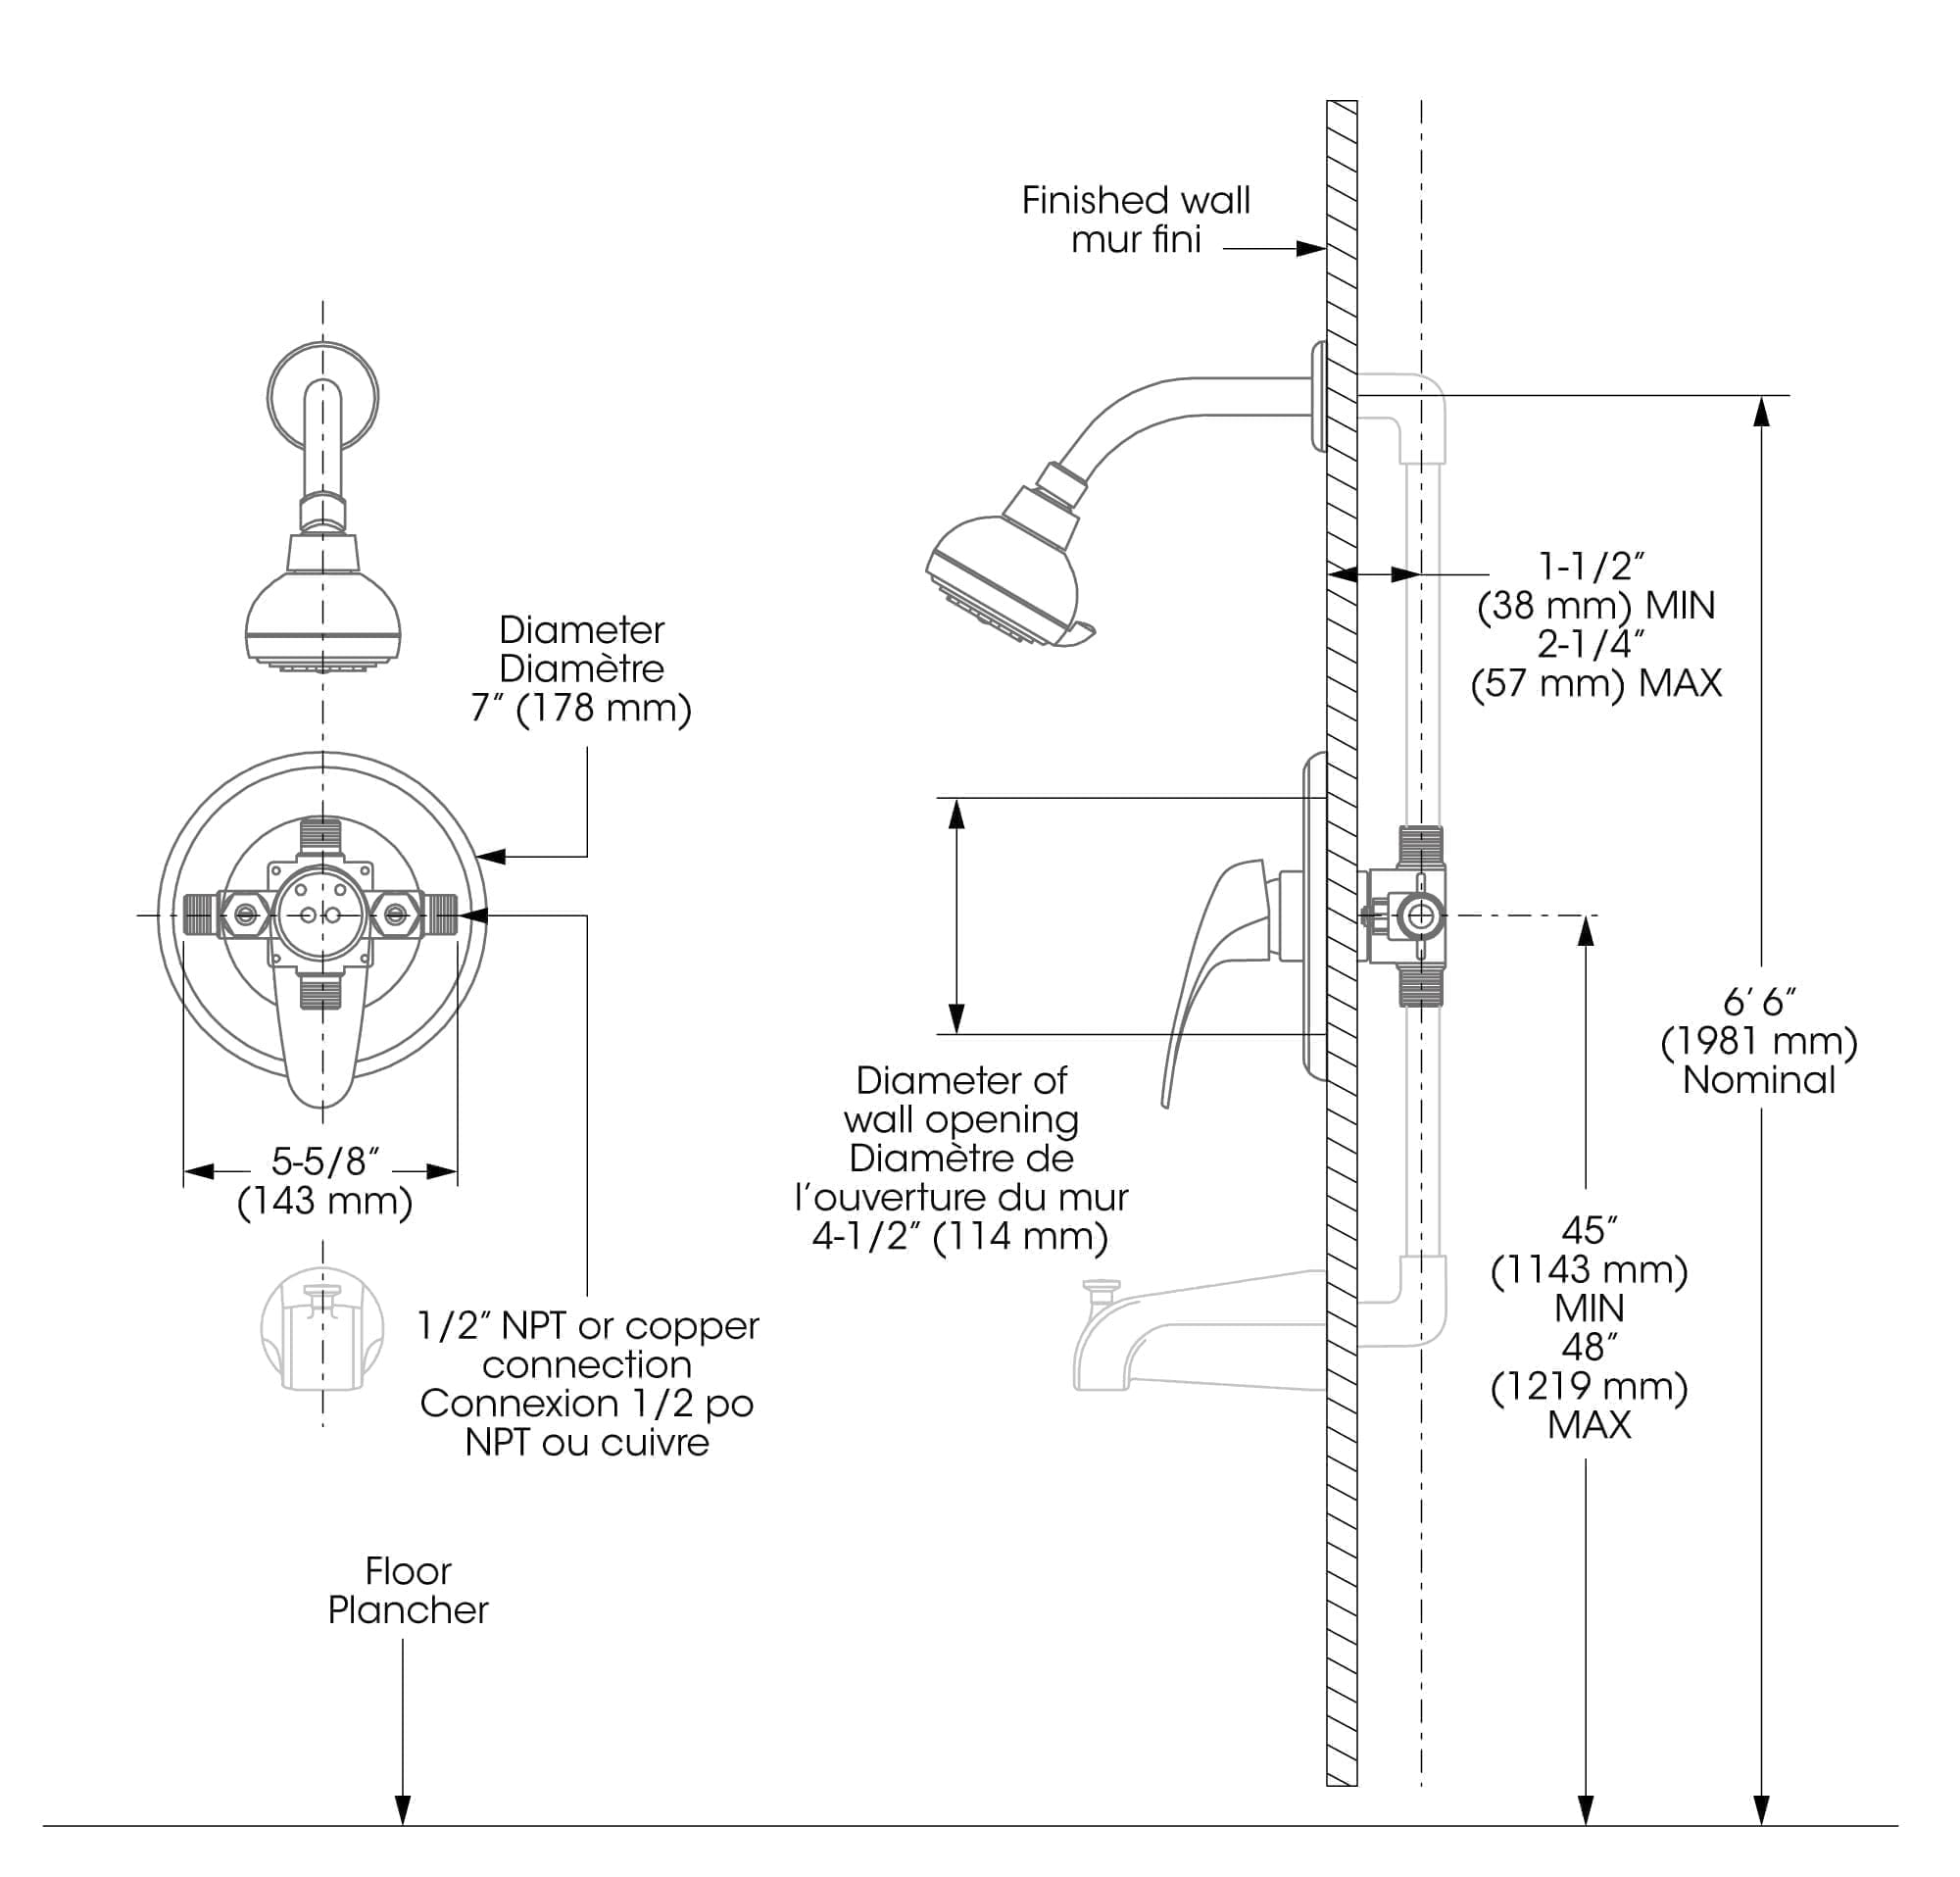 Pressure Balance Valve Diagram Schematic Diagrams Standard Heritage Series Tub Shower Az Partsmaster Faucet Complete Model With Balanced And Kohler Balancing Mixing Repair Installation